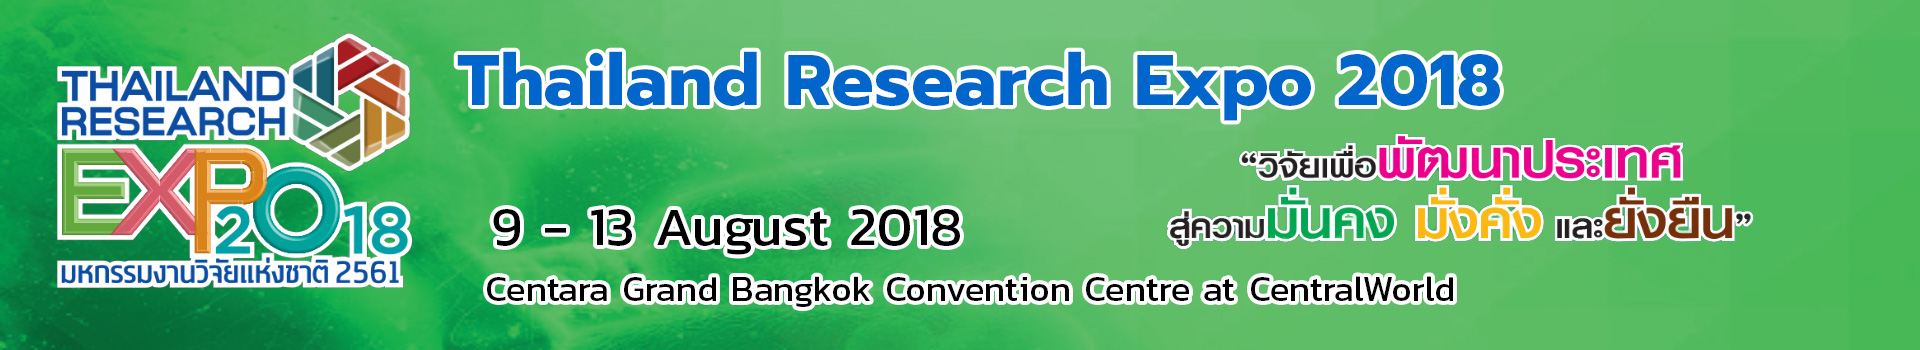 Thailand Research Expo 2018